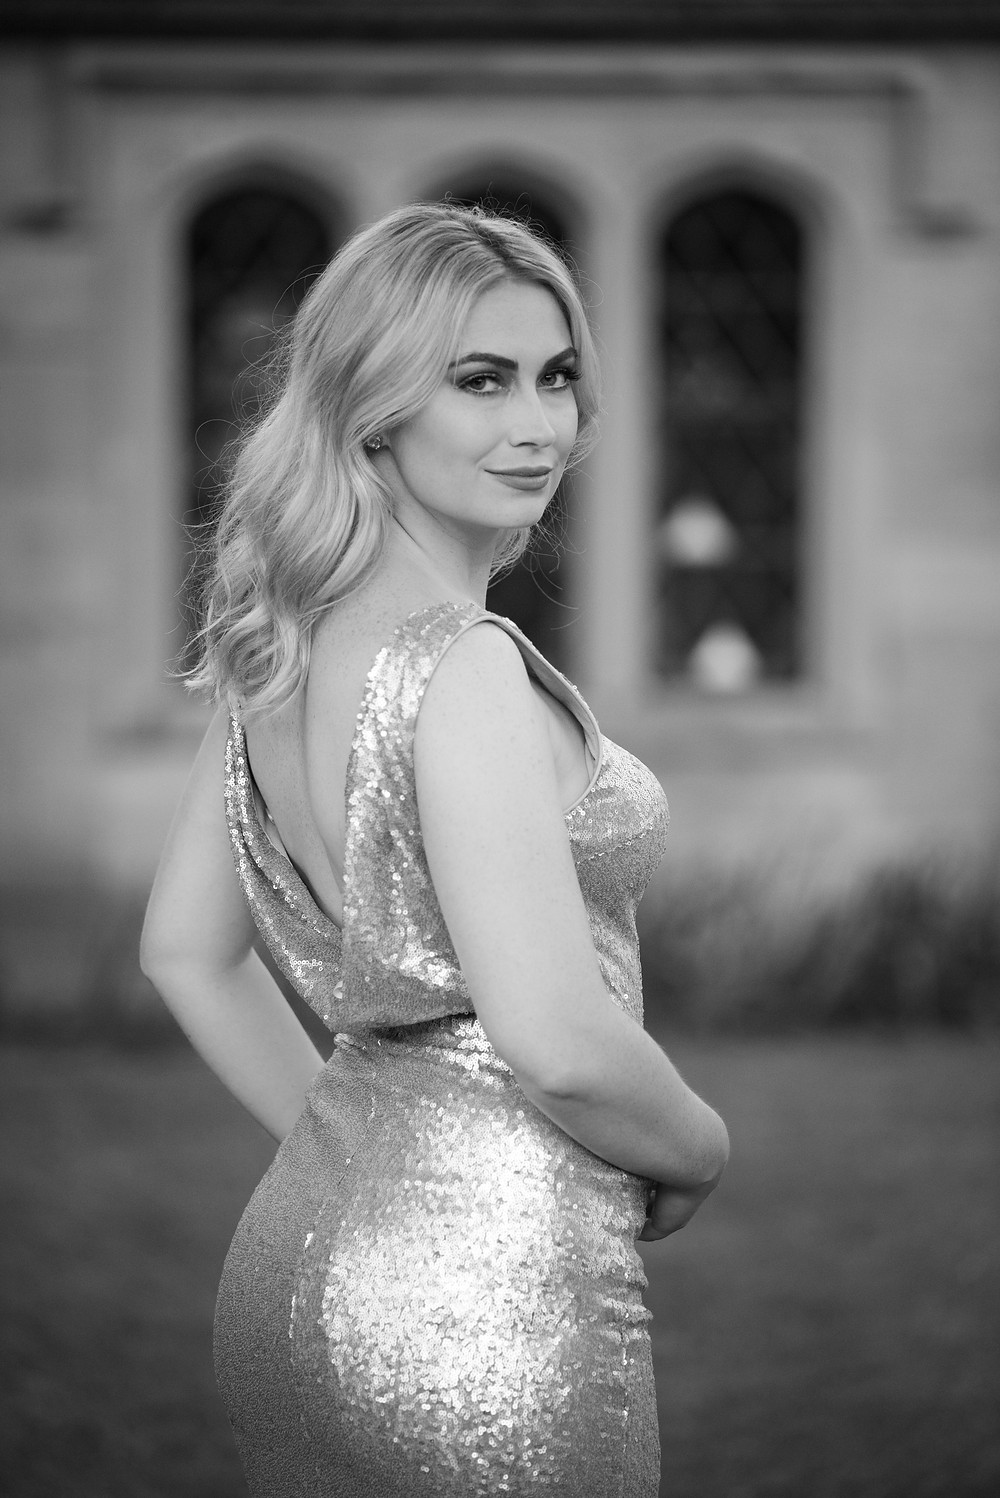 A black and white portrait of a women in a sequin gown during an engagement session at Hartwood Acres